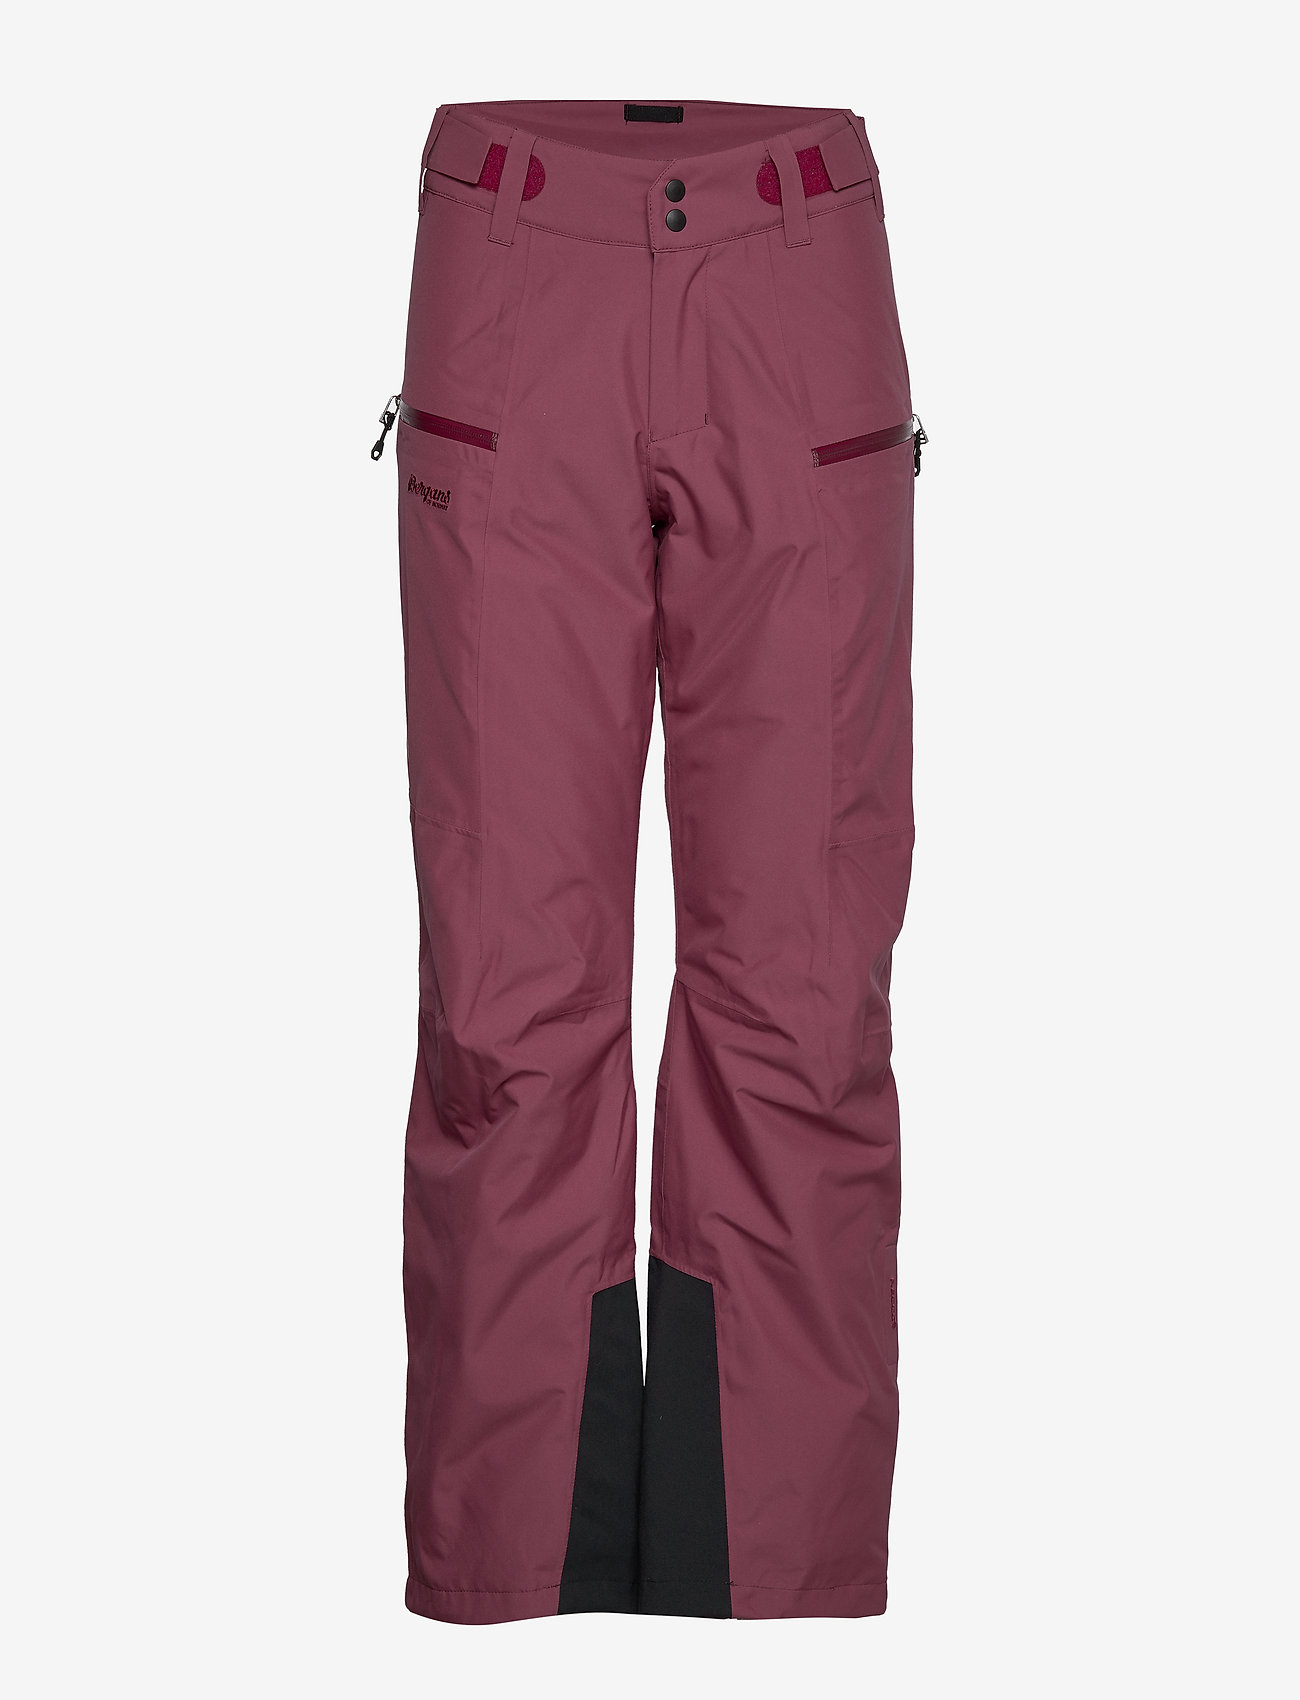 Bergans - Stranda Ins W Pnt - insulated pants - beetred - 0